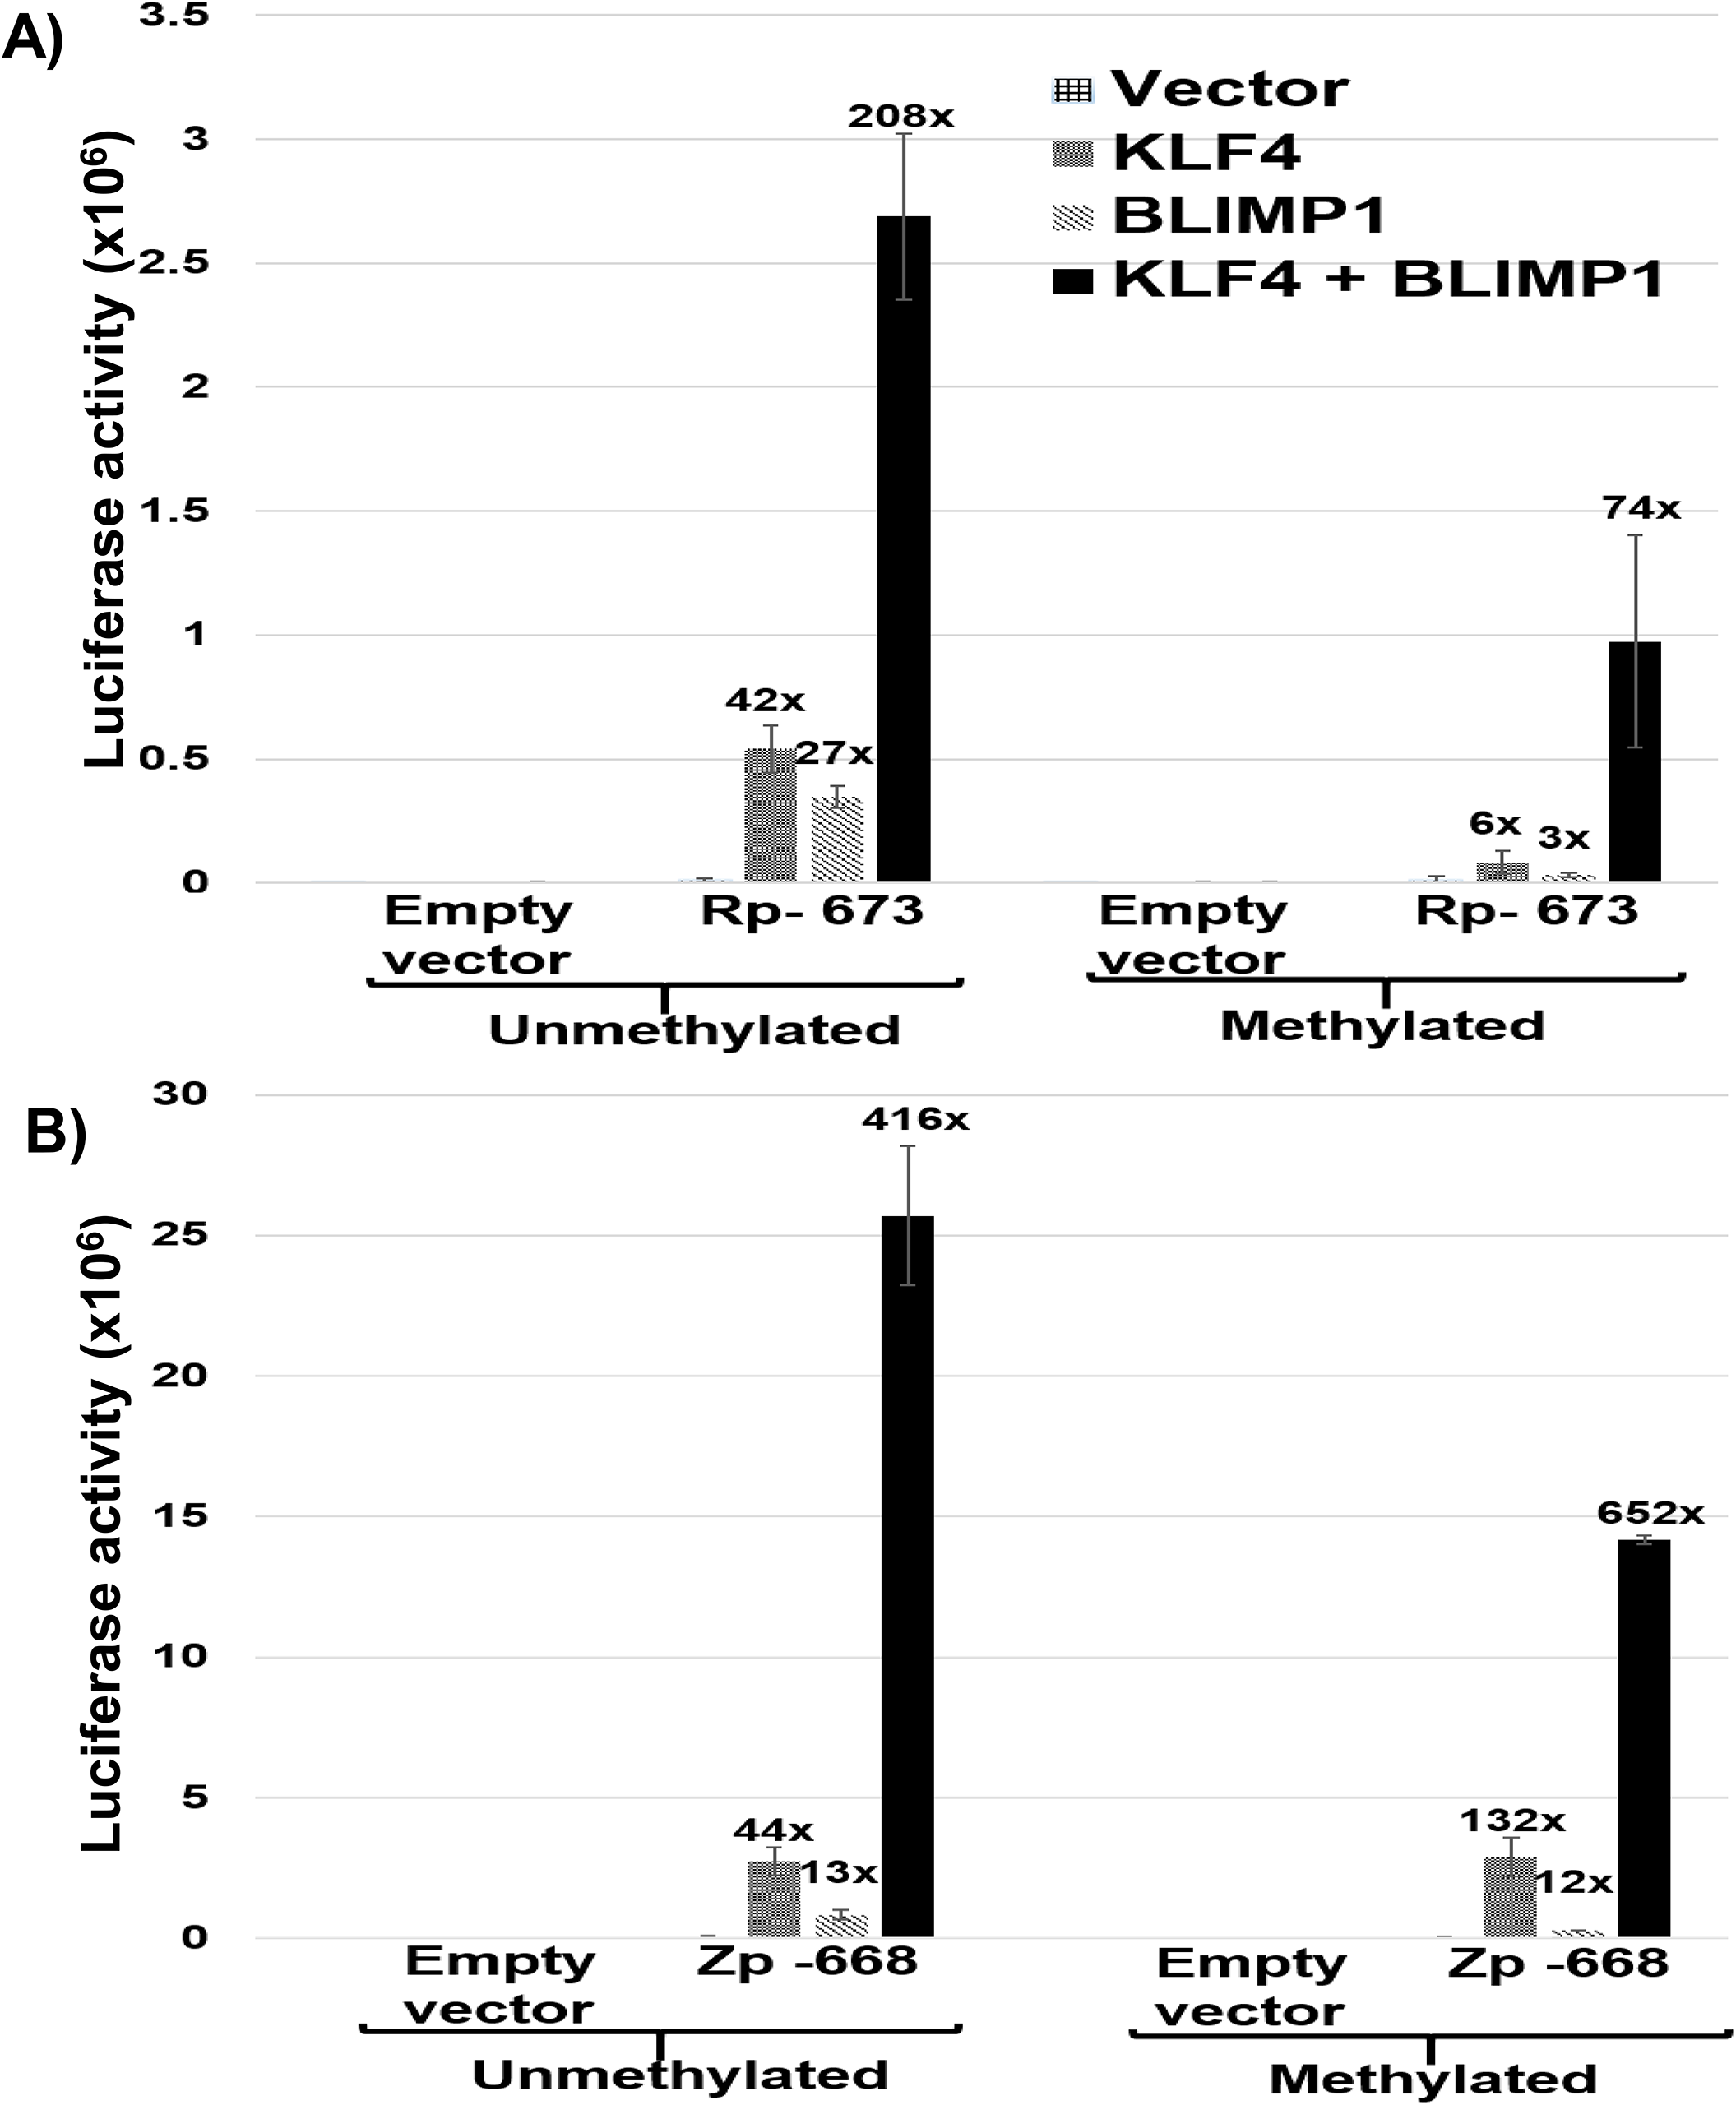 KLF4 synergizes with BLIMP1 to activate both Rp and Zp, irrespective of the promoter methylation state.